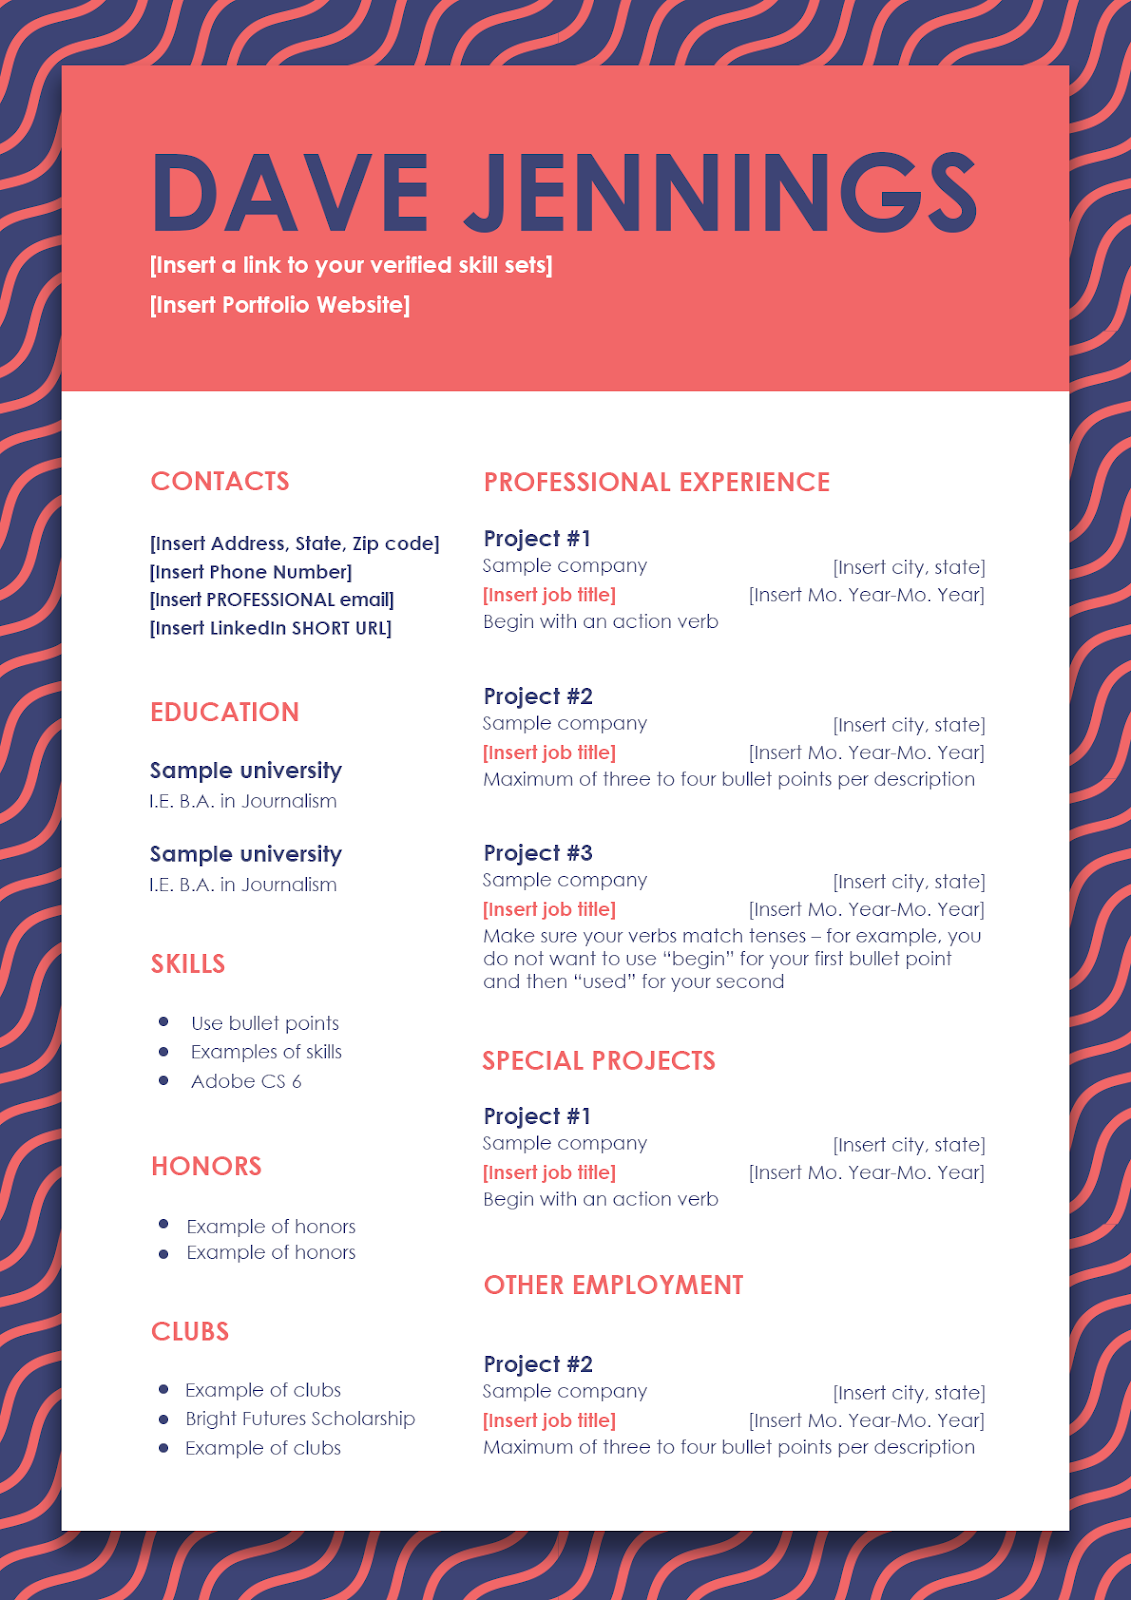 10 free psd resume templates to help yours stand out